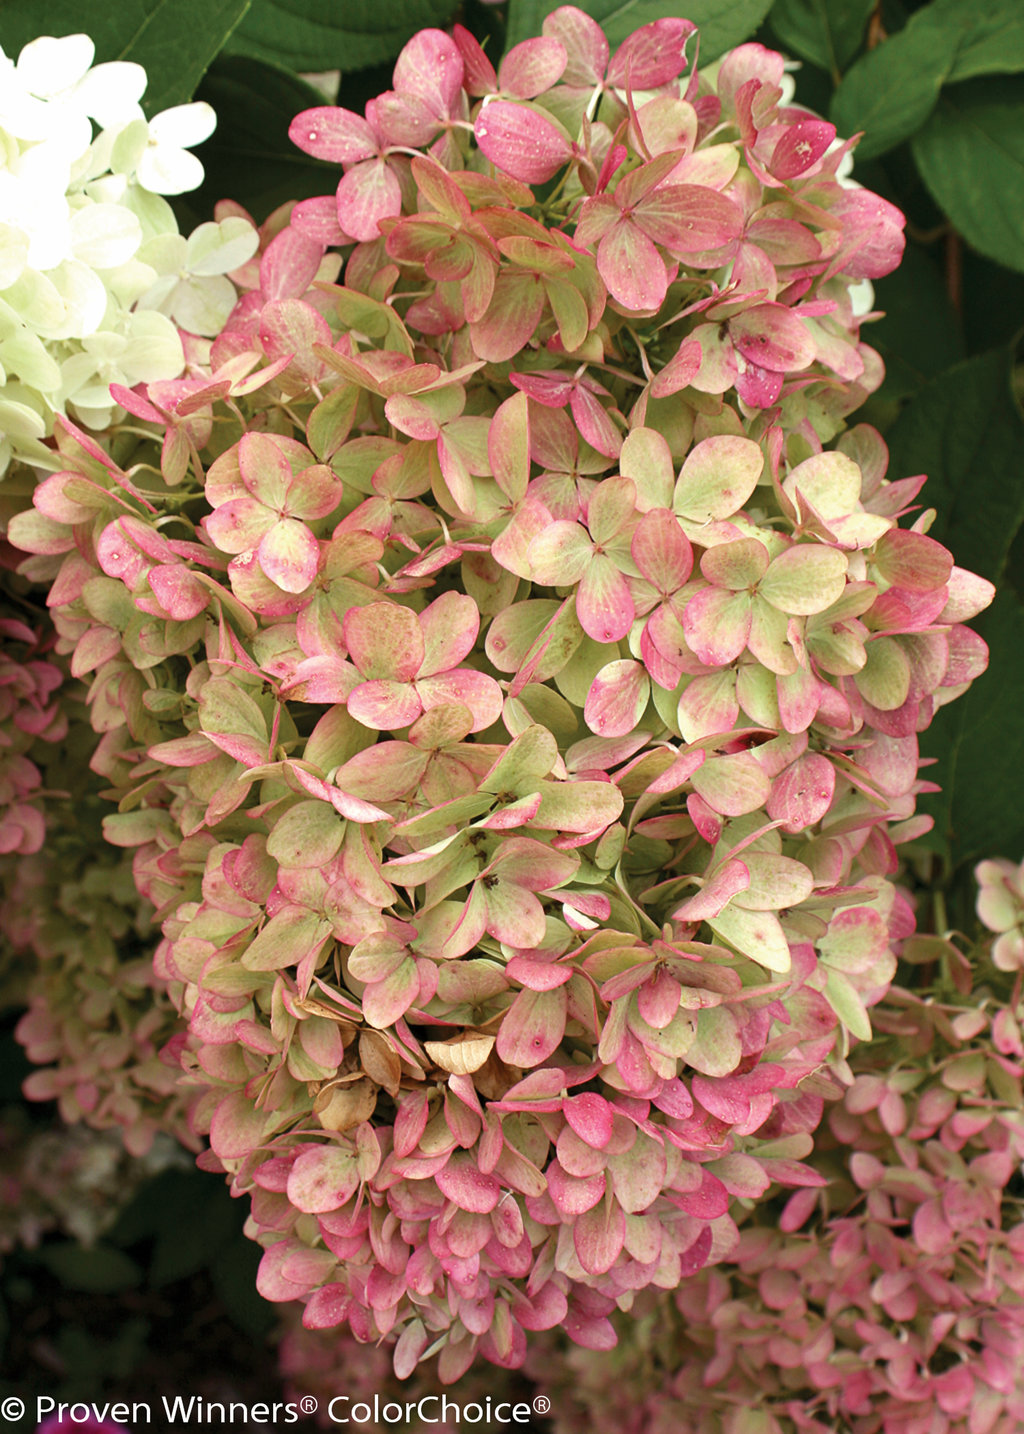 39 limelight 39 panicle hydrangea hydrangea paniculata images proven winners. Black Bedroom Furniture Sets. Home Design Ideas